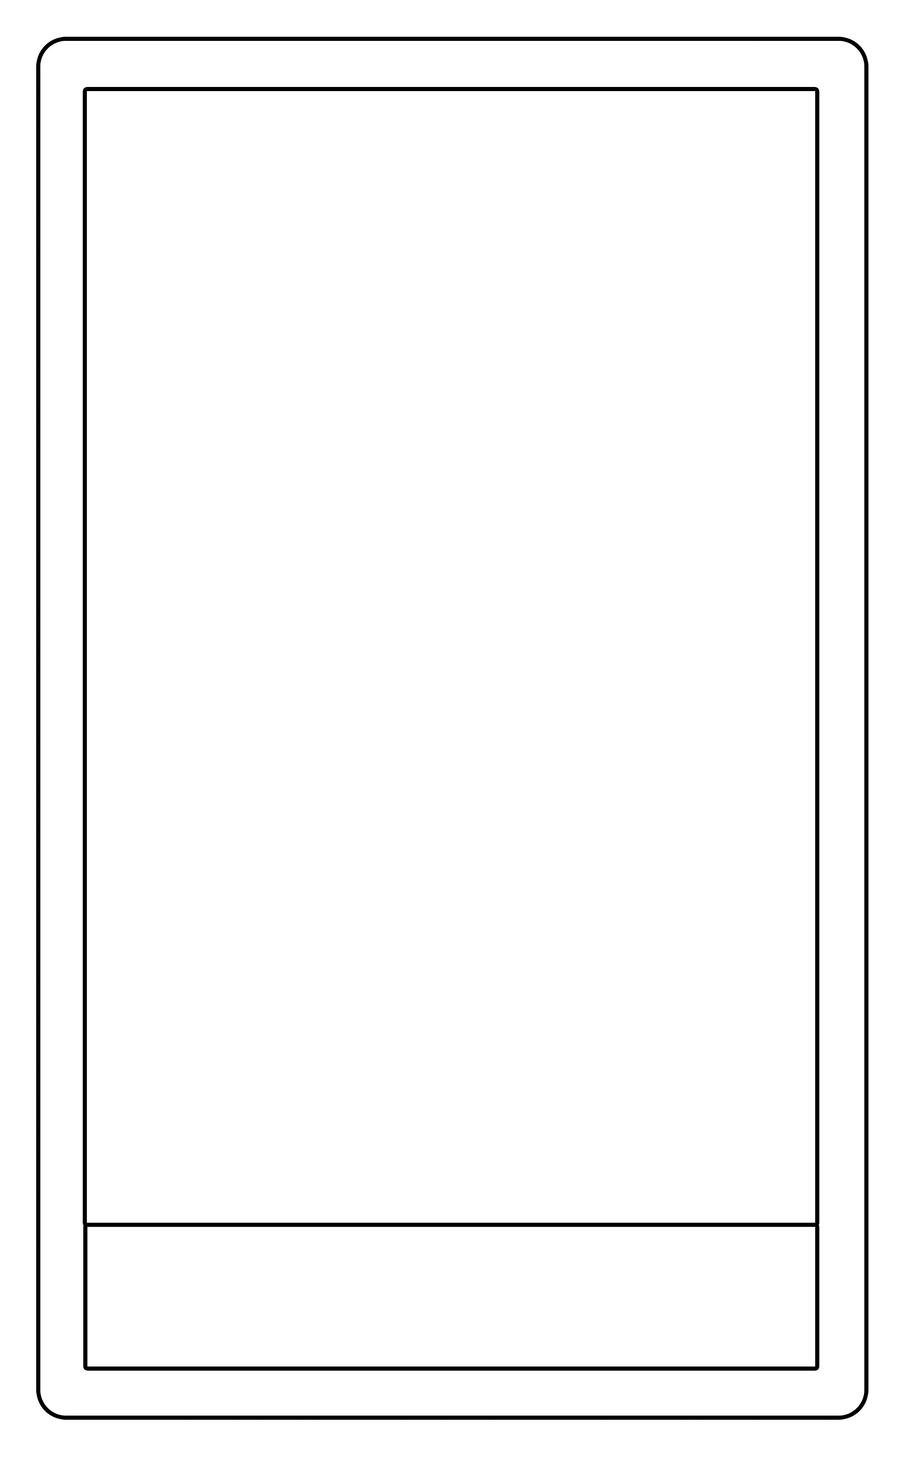 tarot card template by arianod on deviantart marseille. Black Bedroom Furniture Sets. Home Design Ideas